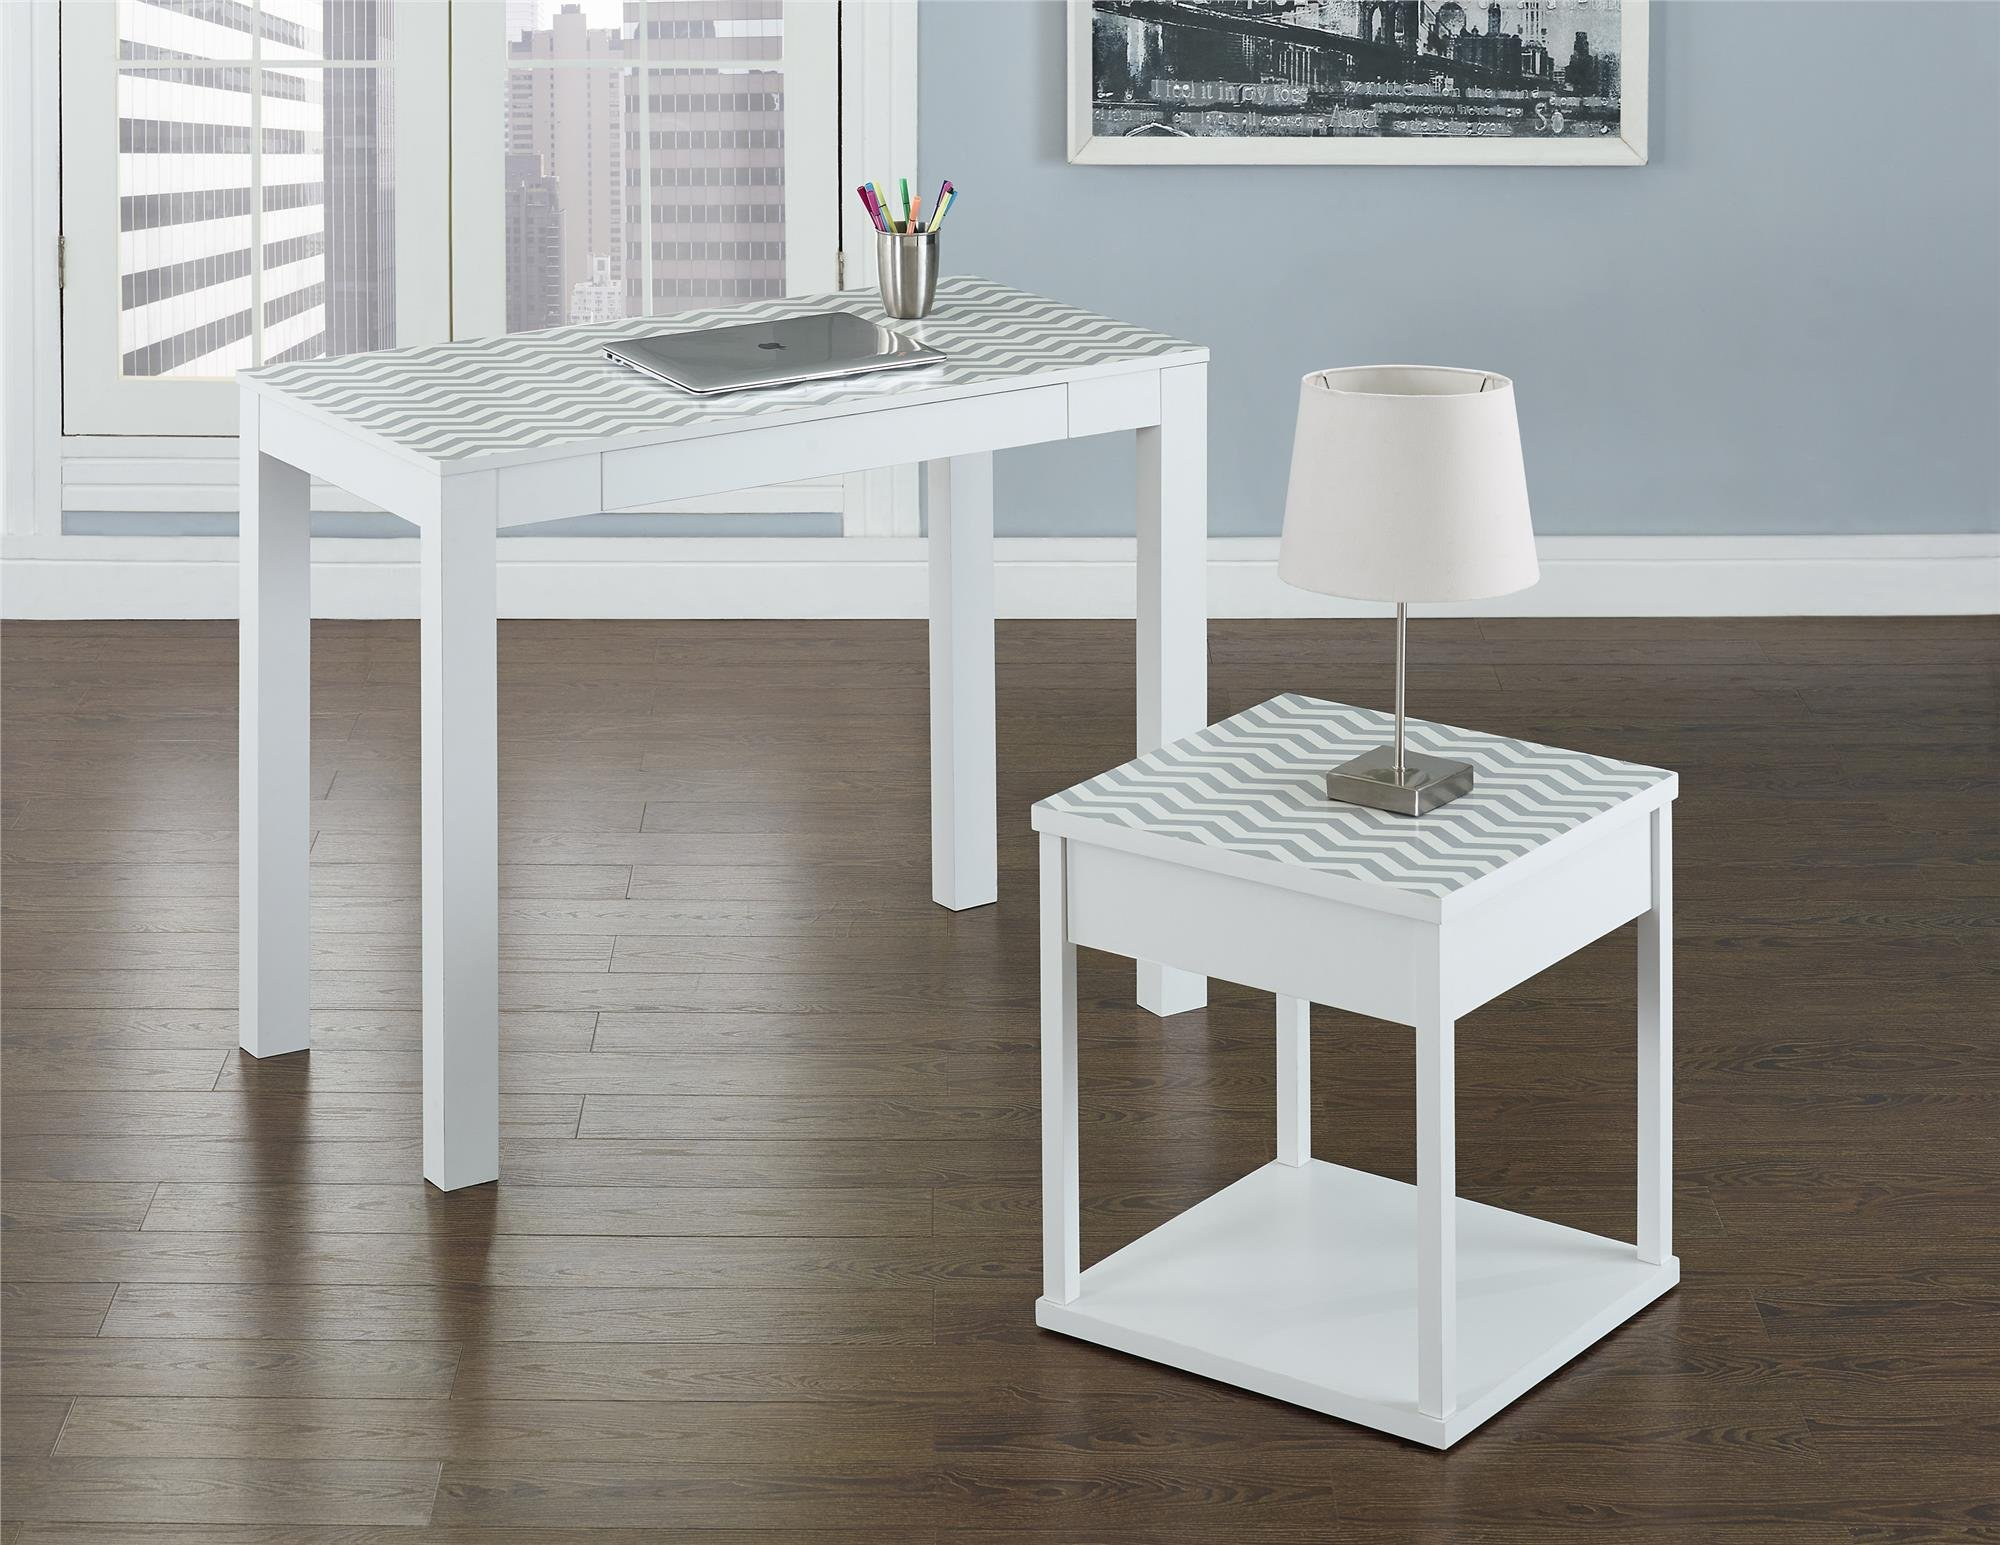 Ameriwood Home Parsons Desk Drawer, White/Gray Chevron by Ameriwood Home (Image #8)